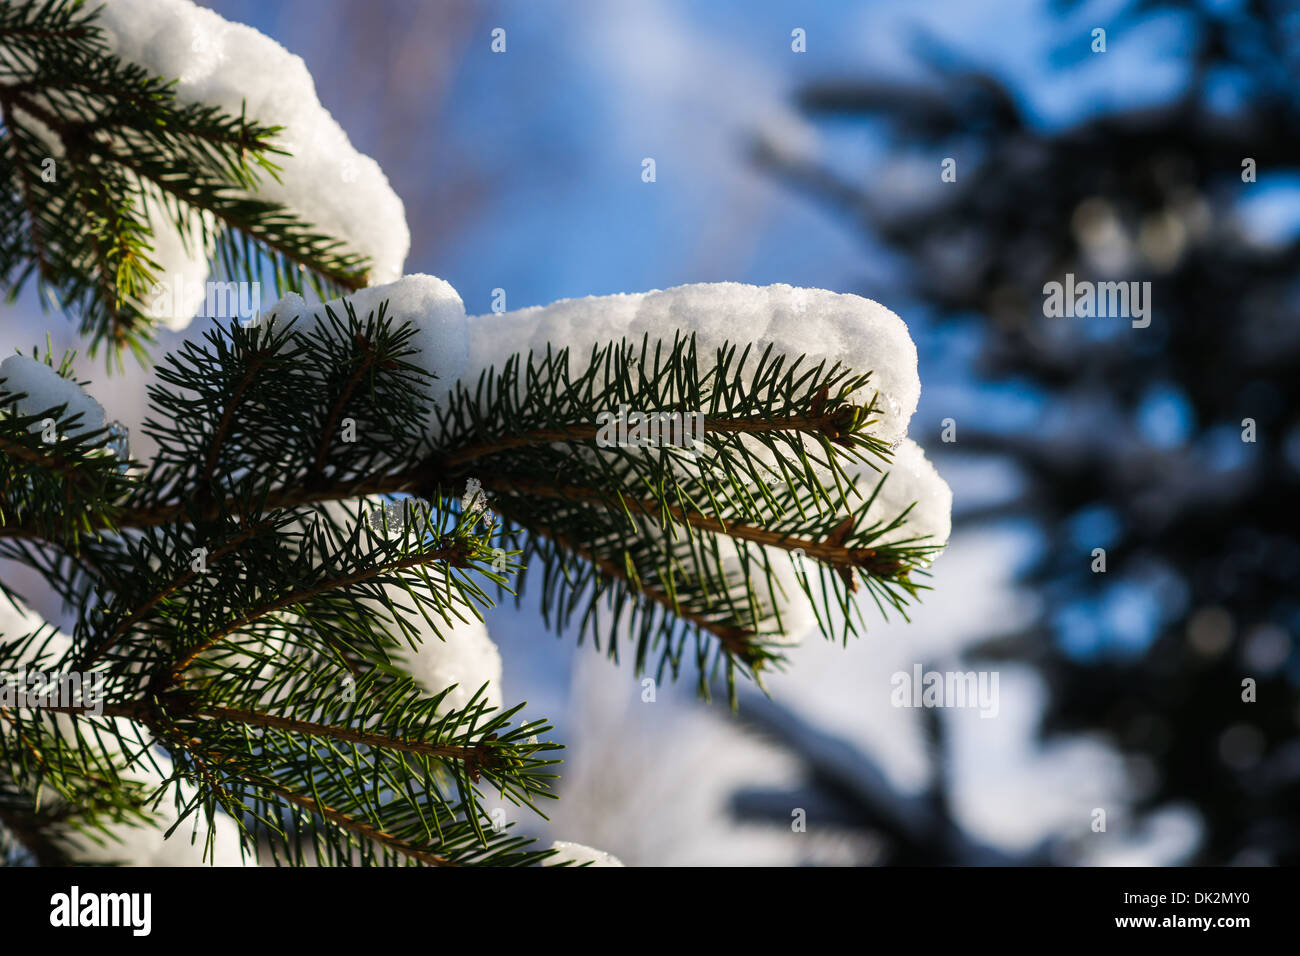 Christmas Tree 7. Closeup view of a spruce tree, covered with fresh snow. The evergreen joyfulness of Christmas holidays - Stock Image